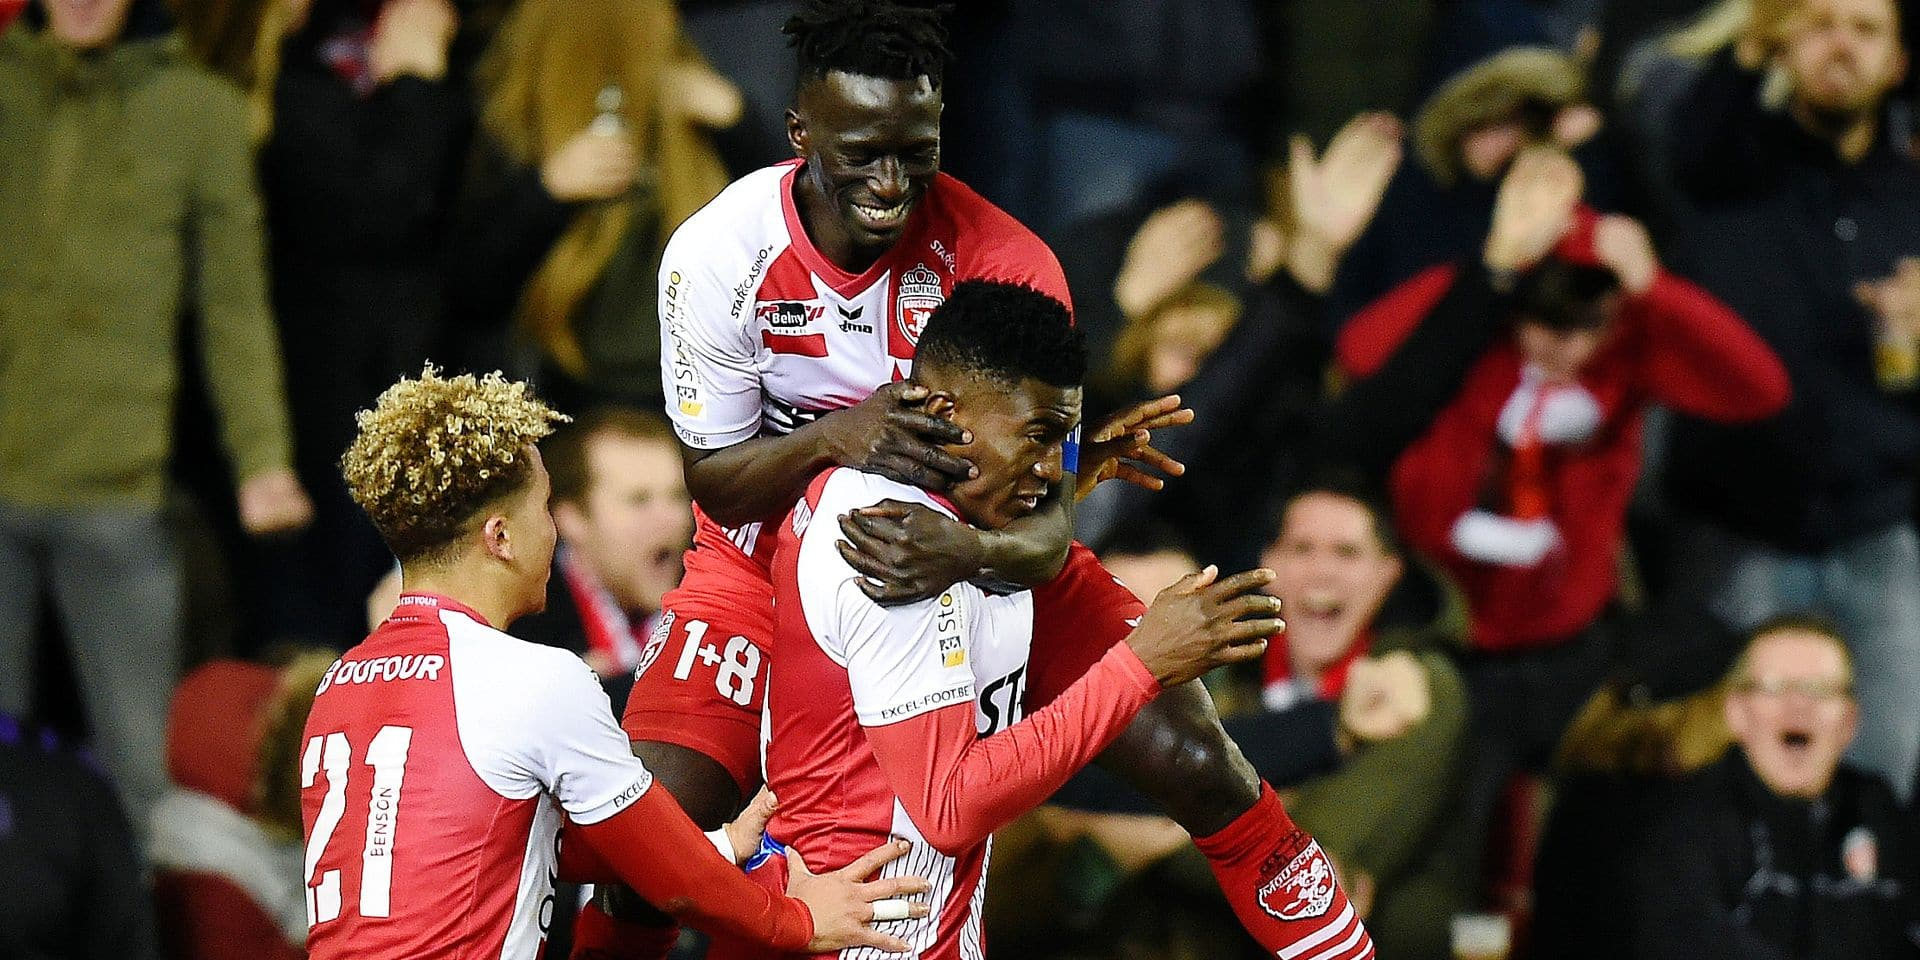 Mouscron's Taiwo Awoniyi celebrates after scoring a goal during a soccer match between Royal Excel Mouscron and Cercle Brugge KSV, Sunday 17 February 2019 in Mouscron, on day 26 of the 'Jupiler Pro League' Belgian soccer championship season 2018-2019. BELGA PHOTO JOHN THYS